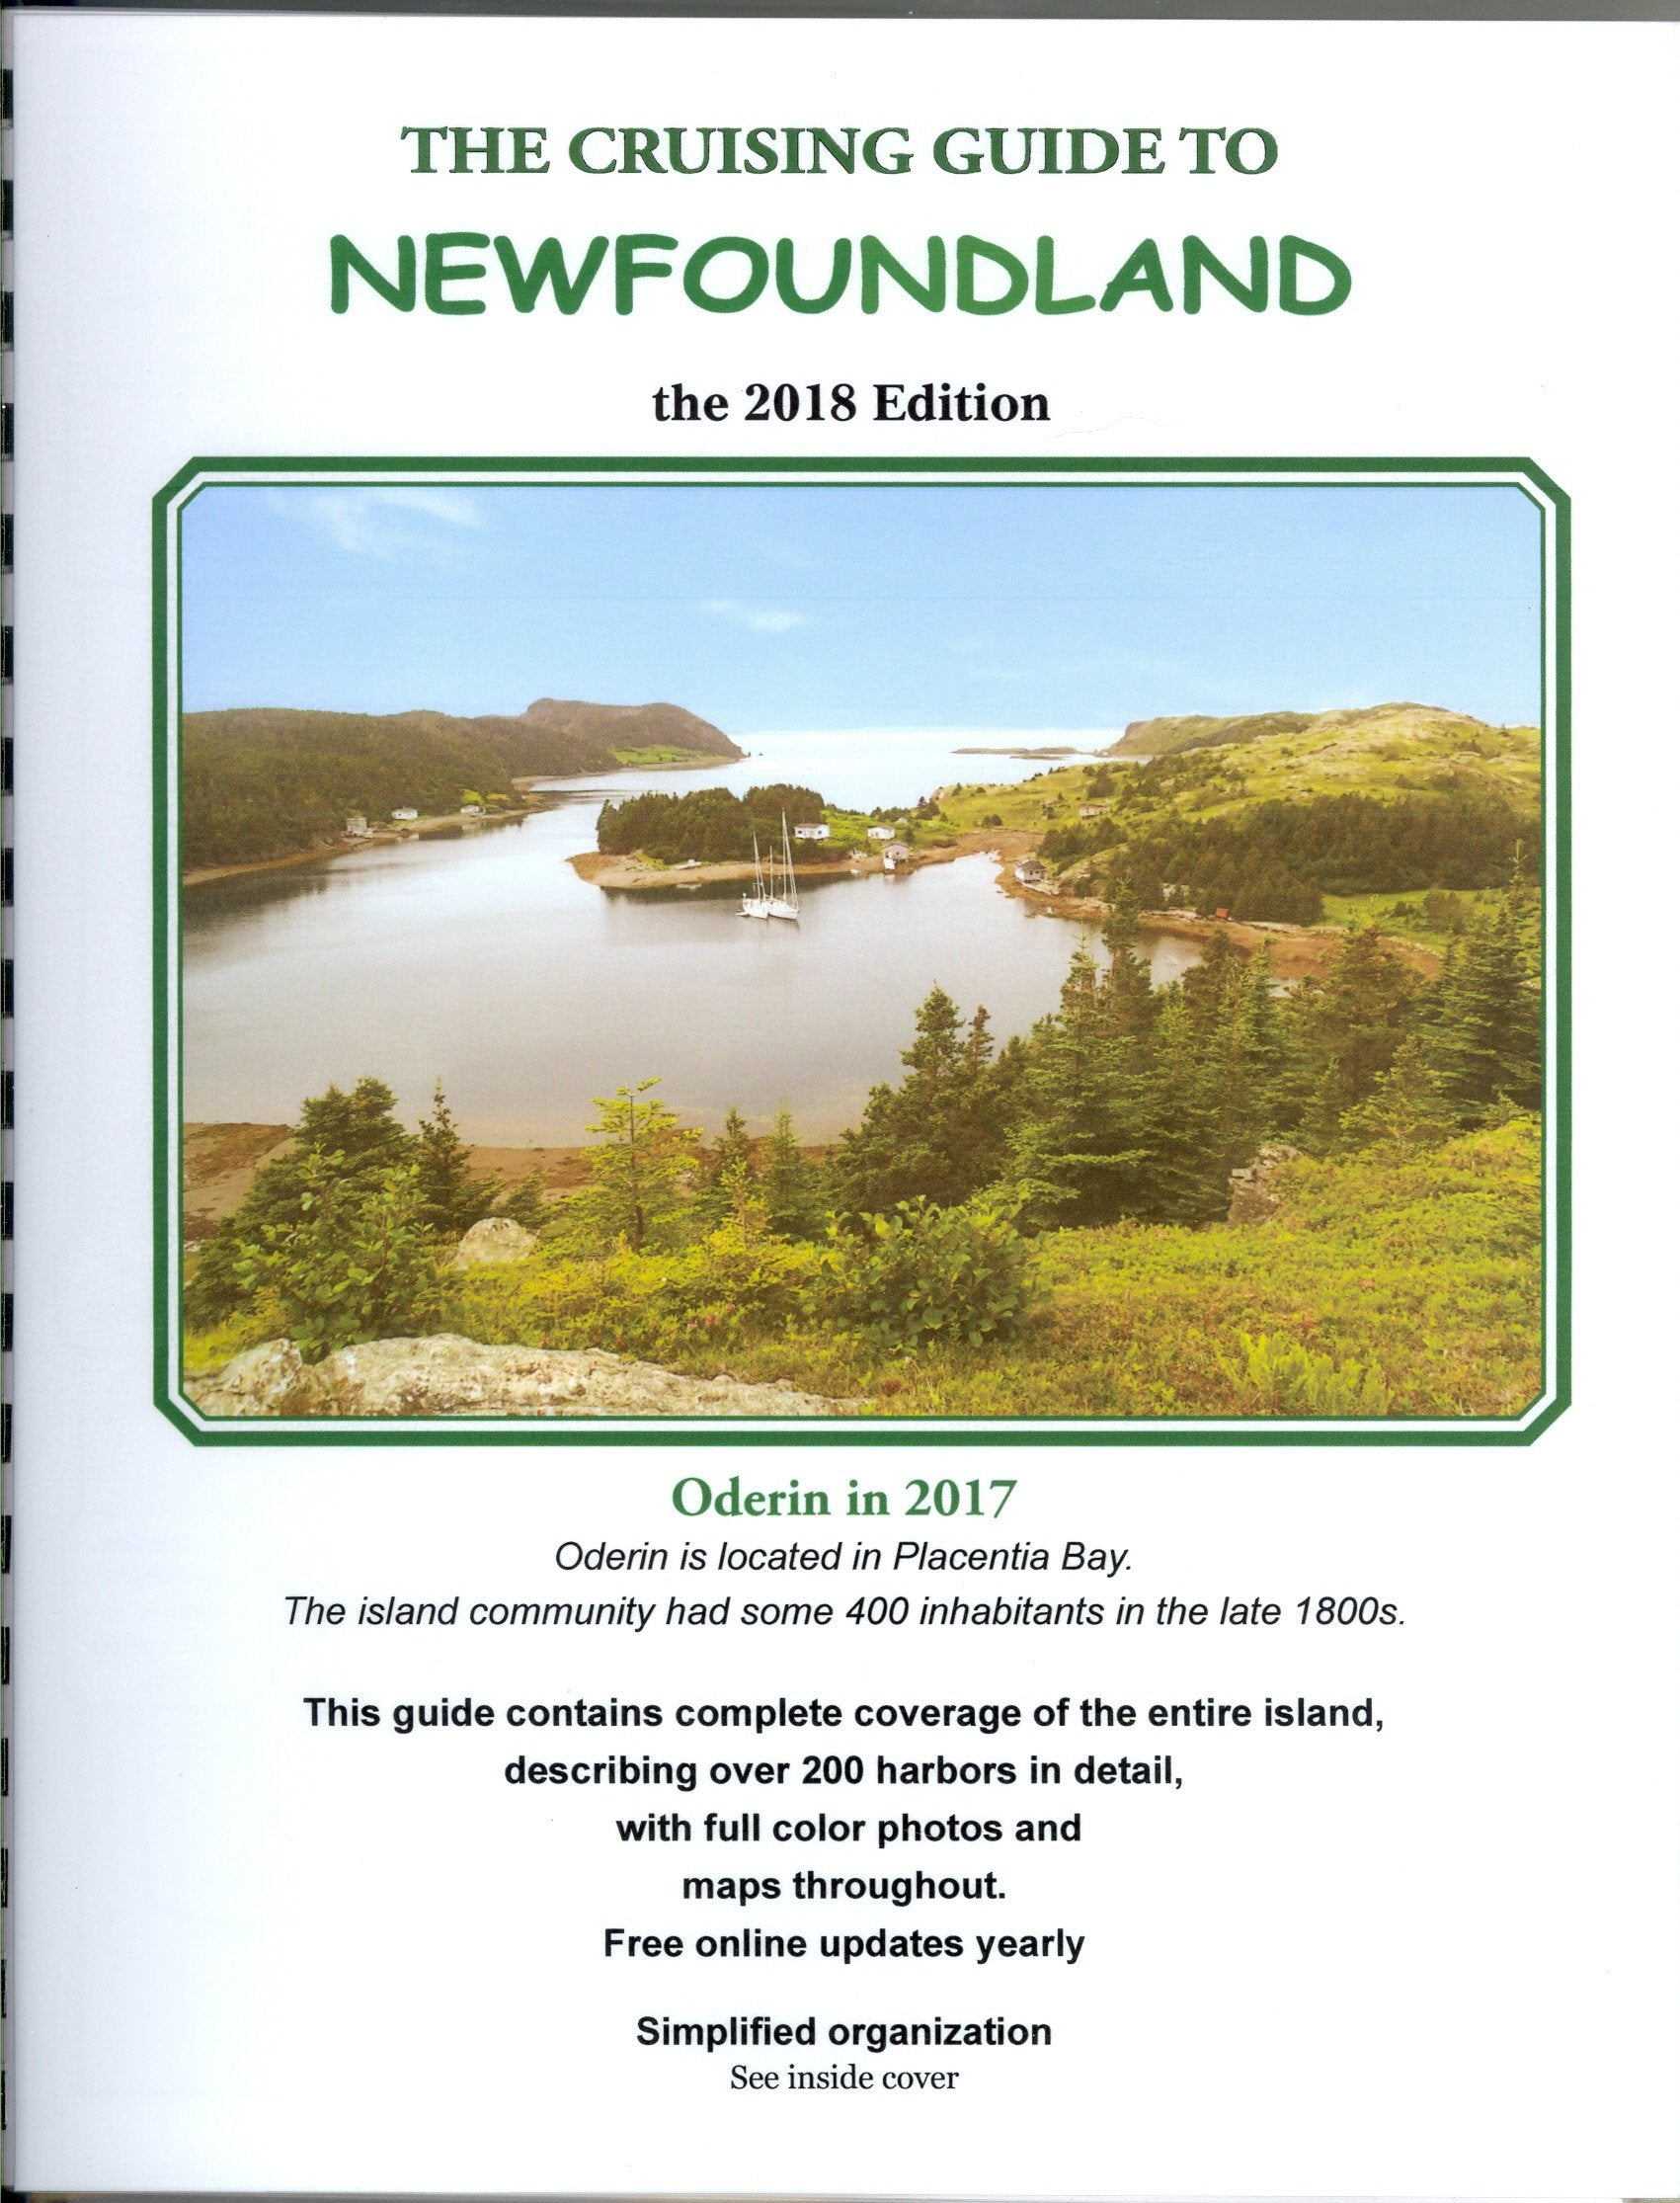 Cruising Guide to Newfoundland